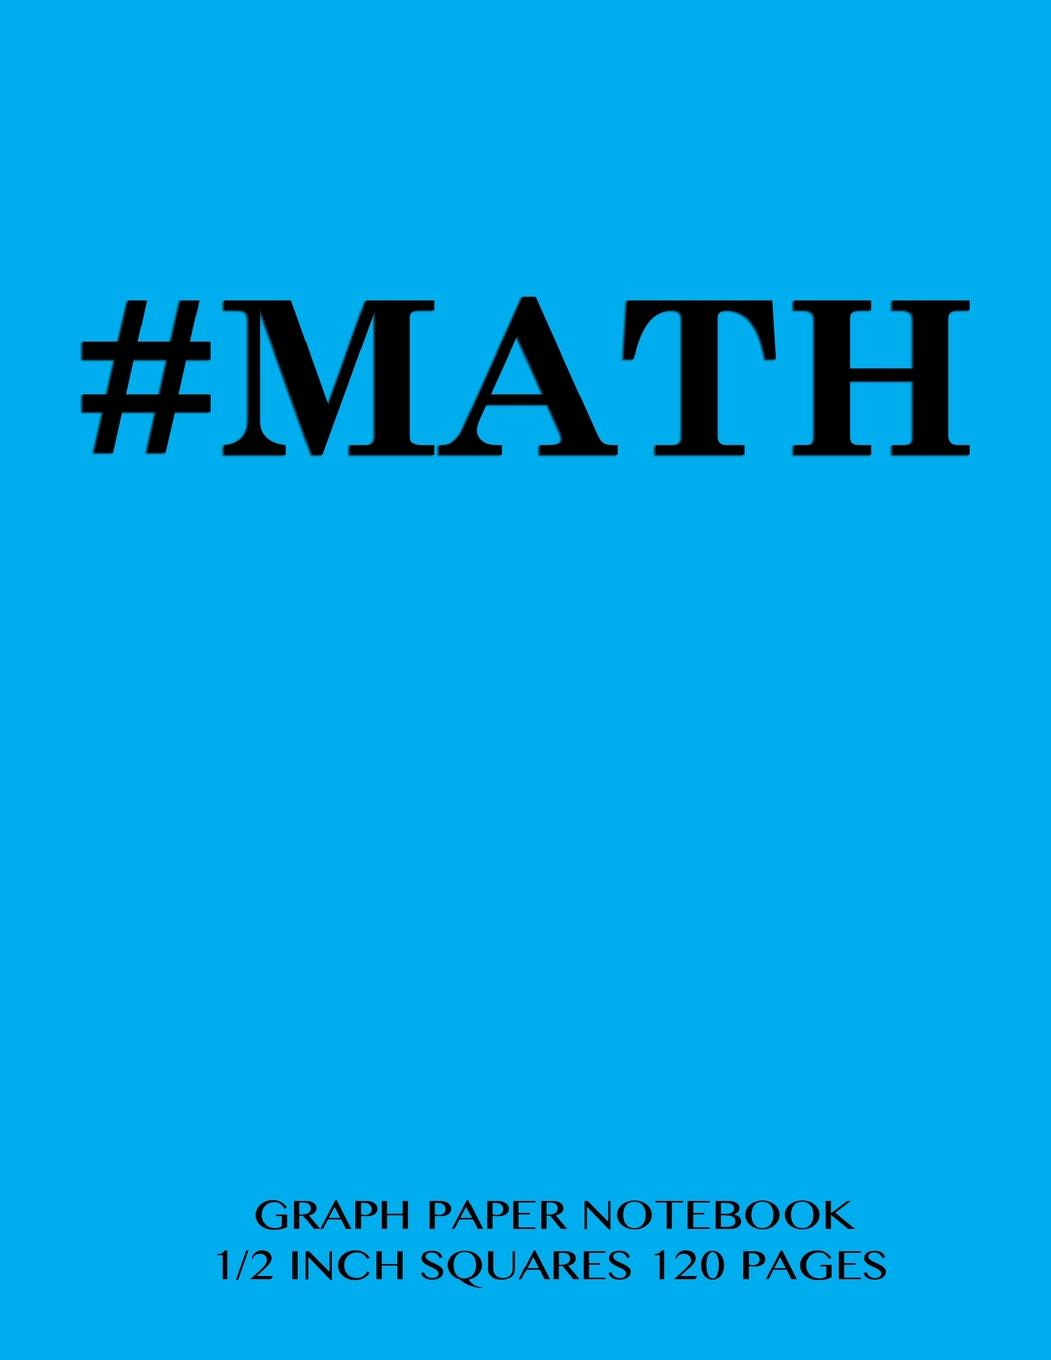 Math Graph Paper Notebook 1/2 Inch Squares 120 Pages: Notebook ...